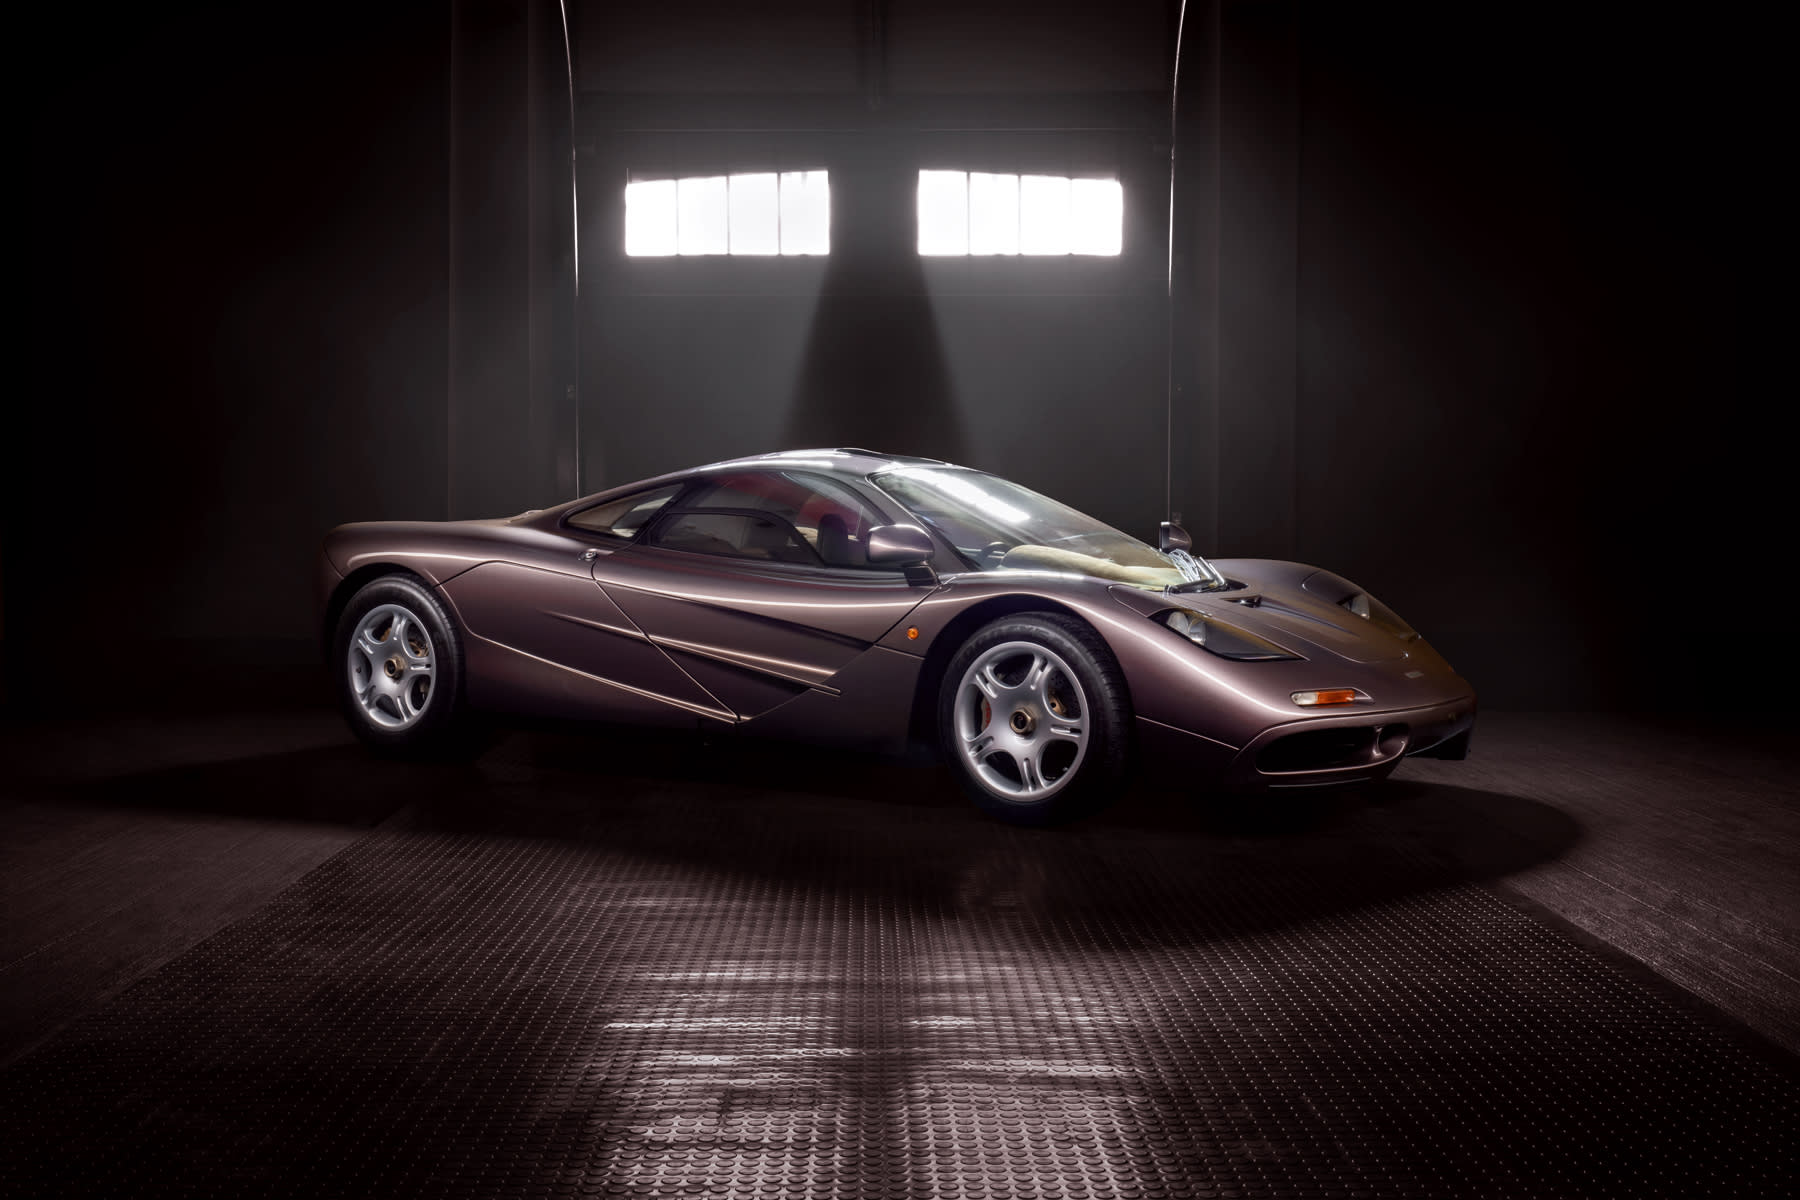 McLaren F1 sells for $20.5 million, the most expensive car auctioned this year - CNBC